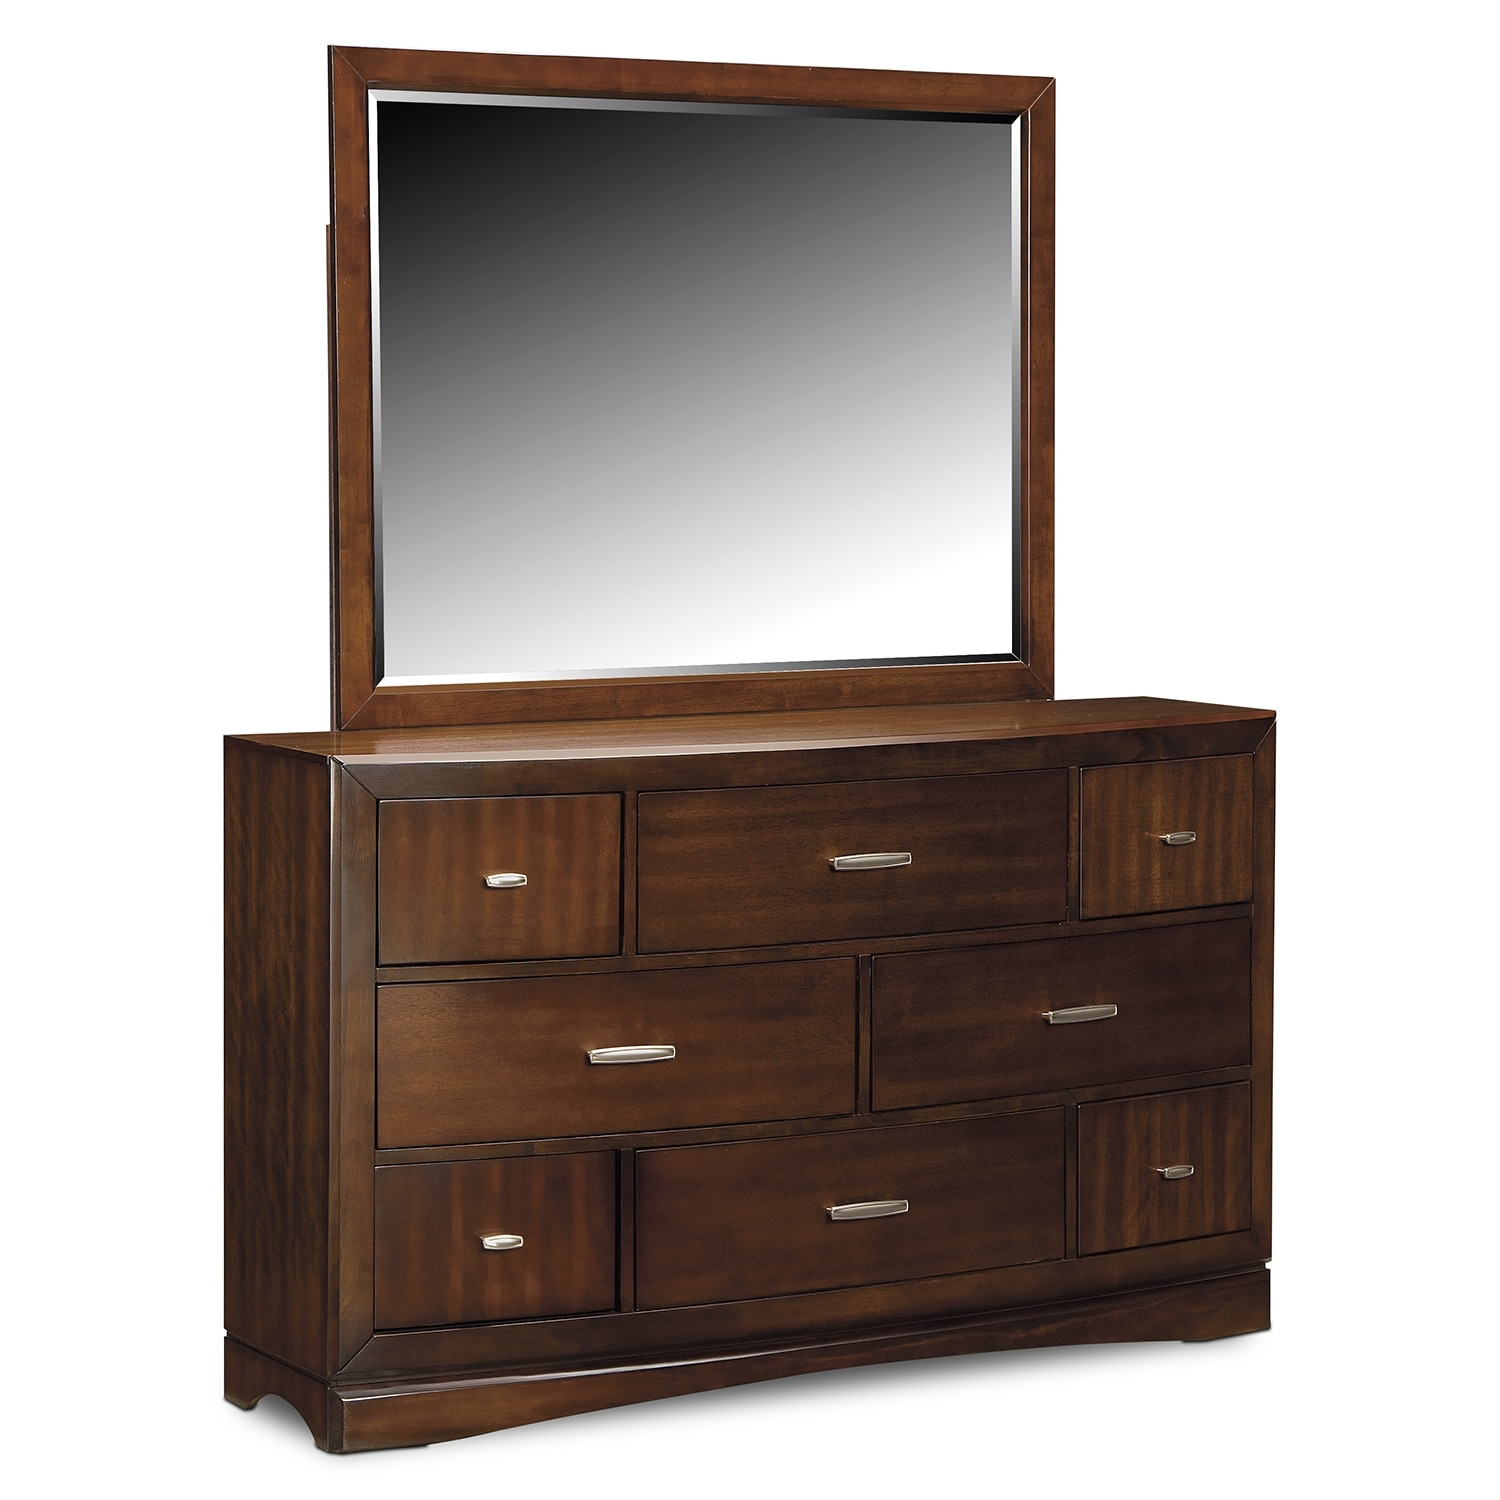 value city furniture dressers toronto dresser and mirror pecan value city furniture 17690